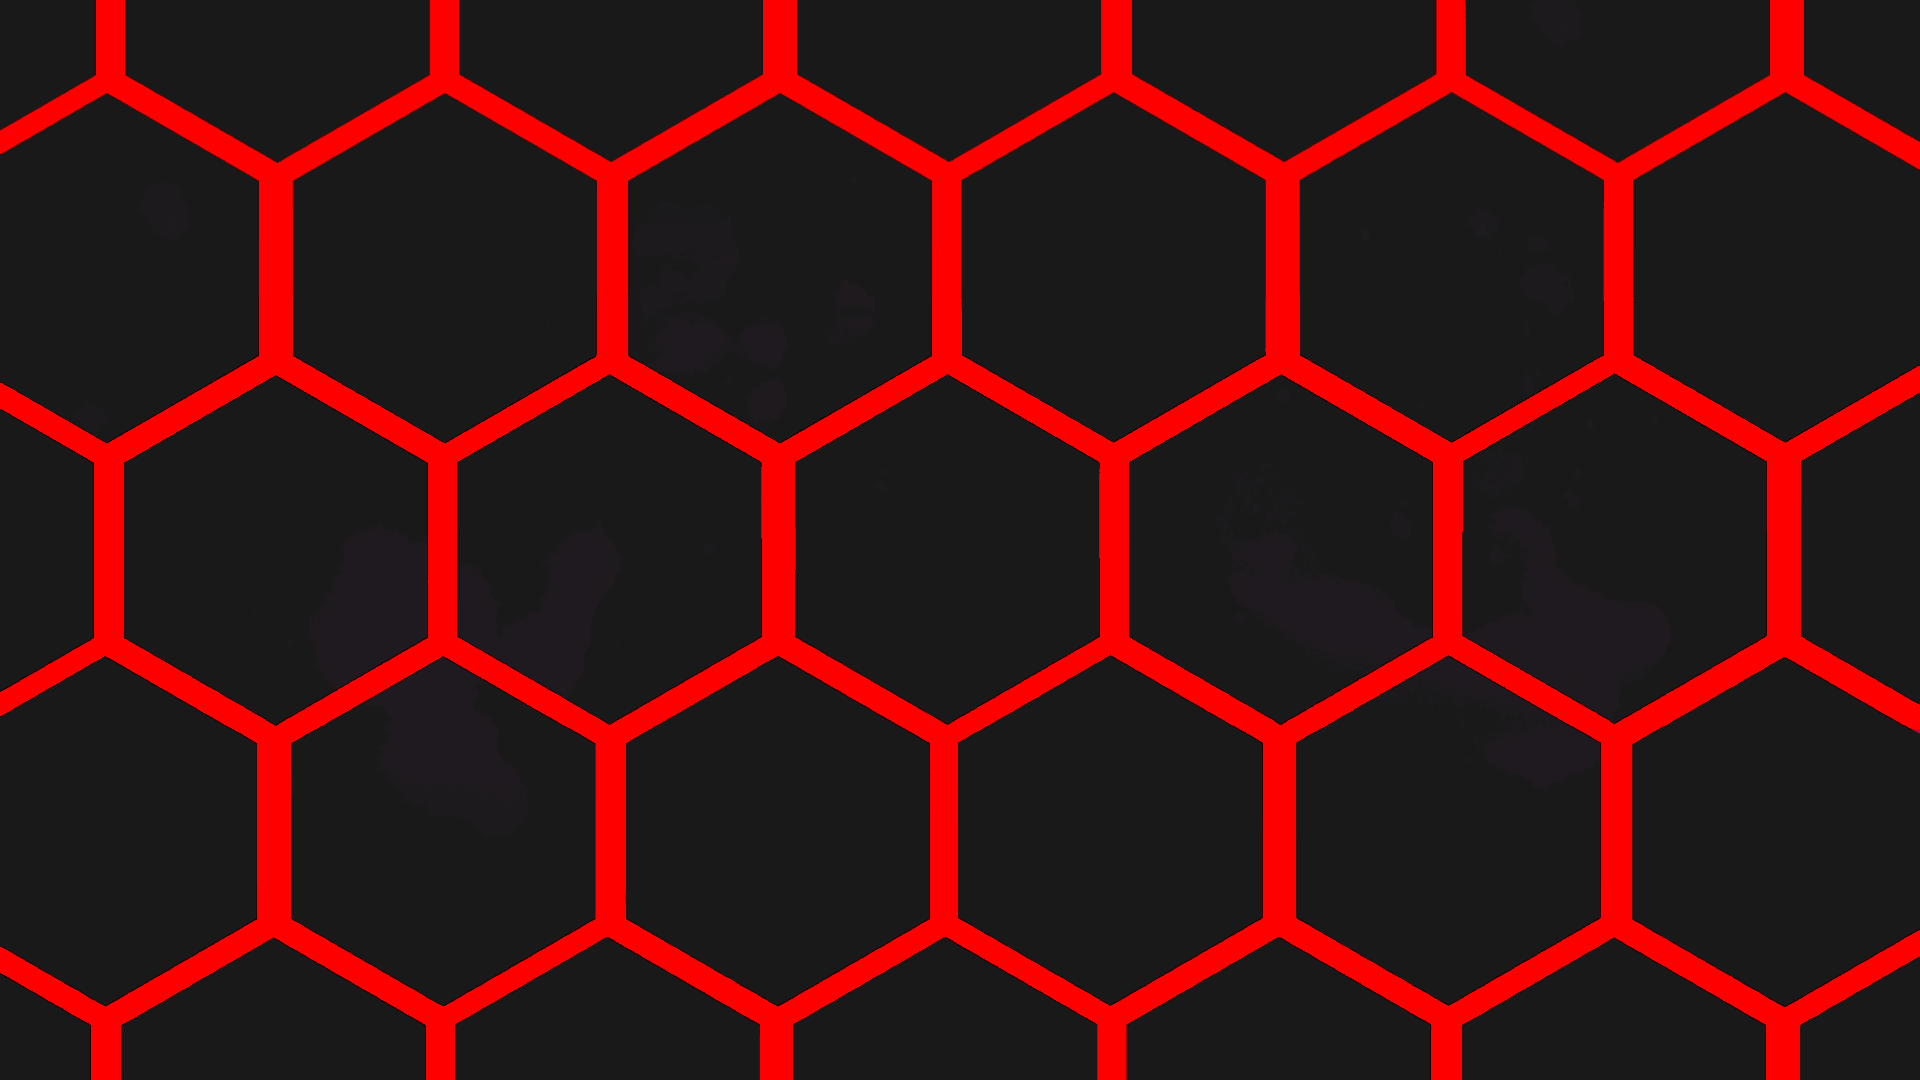 Electric Hive wallpaper that I made [1920x1080] GlobalOffensive 1920x1080